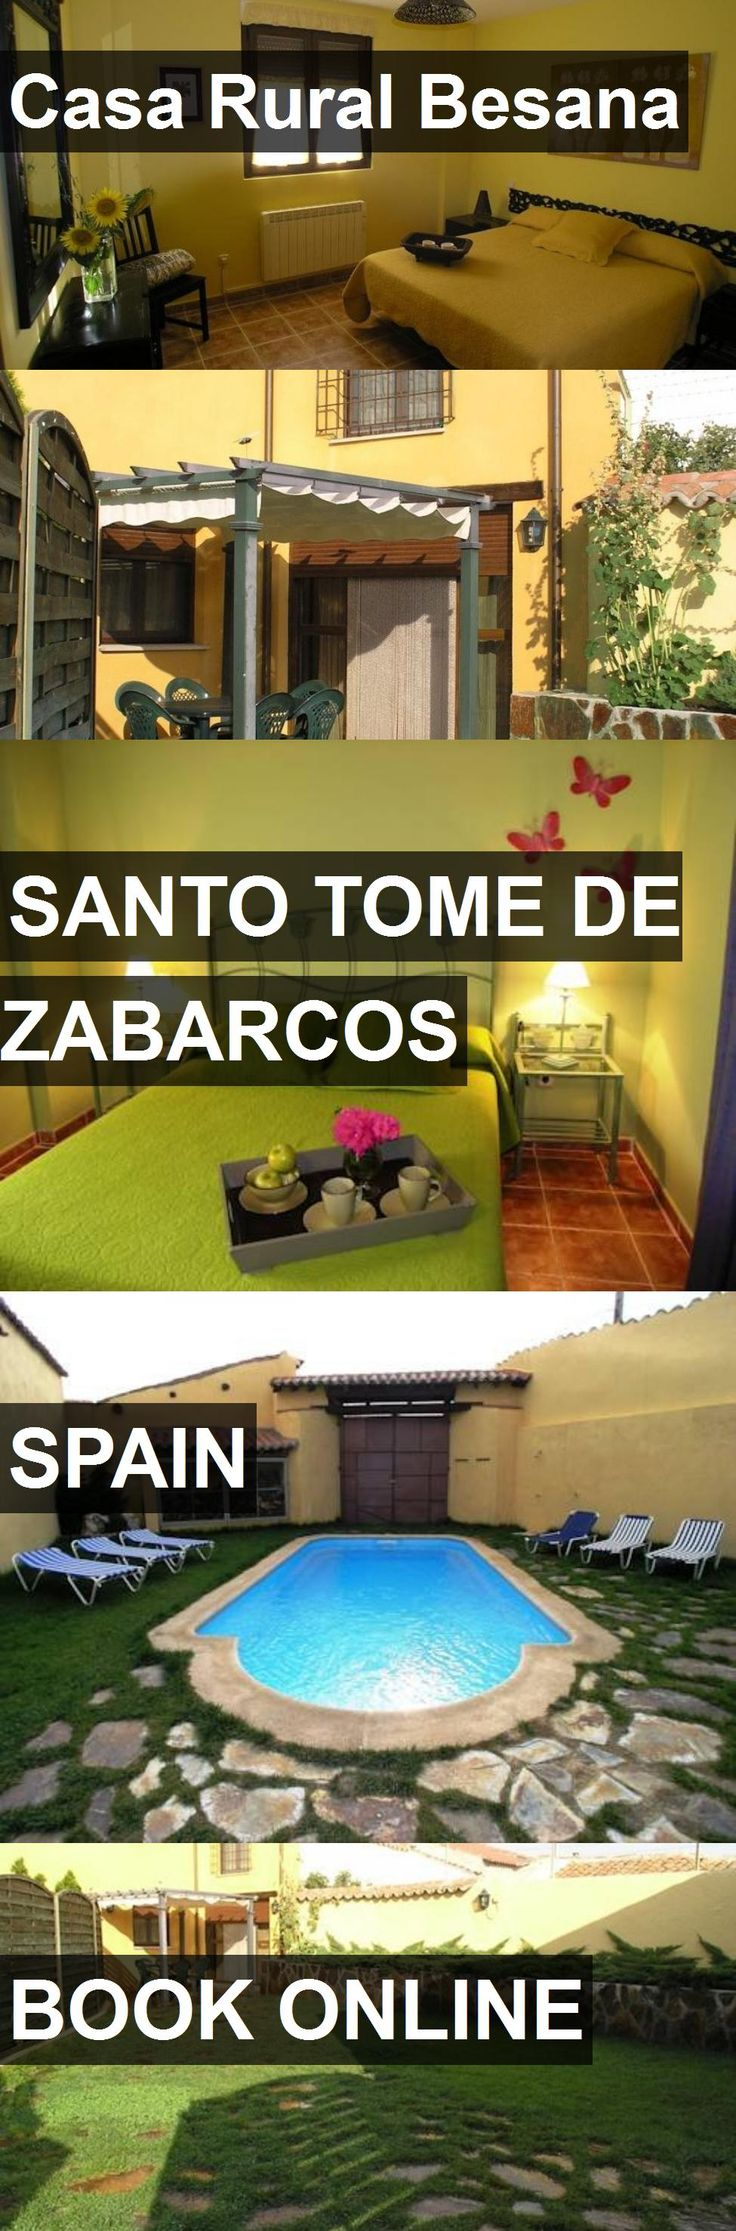 Hotel Casa Rural Besana in Santo Tome de Zabarcos, Spain. For more information, photos, reviews and best prices please follow the link. #Spain #SantoTomedeZabarcos #CasaRuralBesana #hotel #travel #vacation